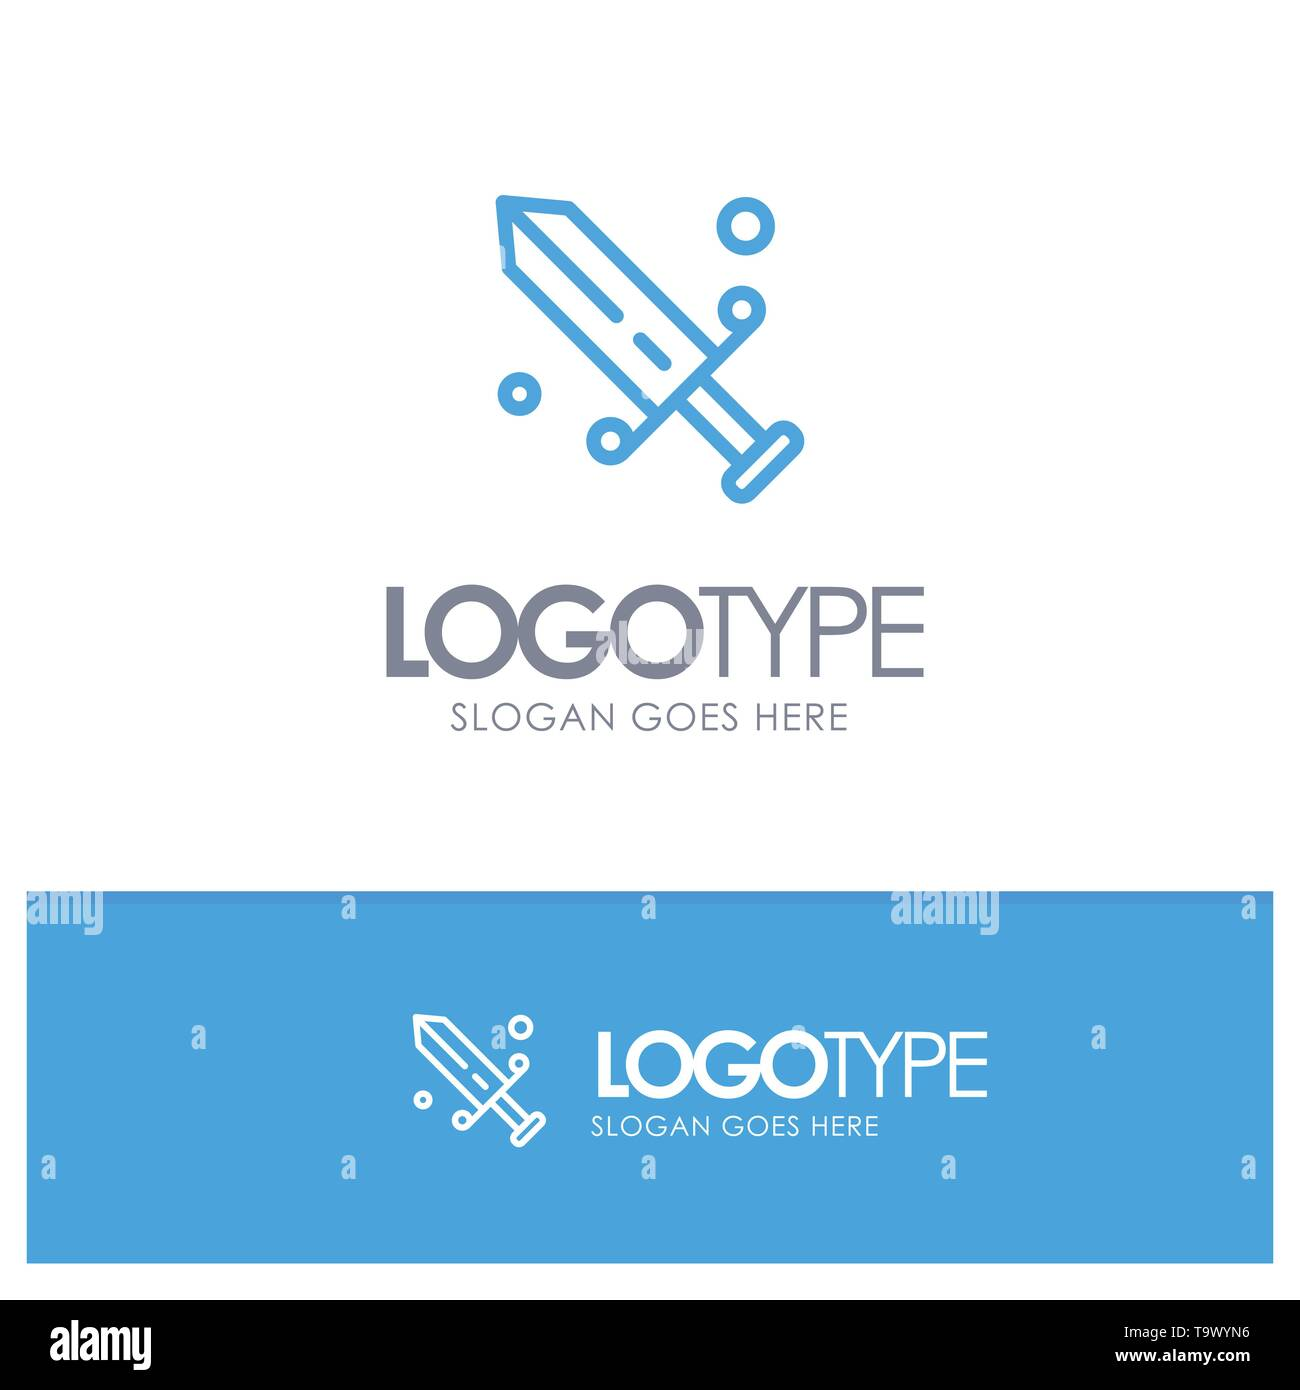 Competition, Fencing, Mask, Olympic Blue outLine Logo with place for tagline - Stock Vector